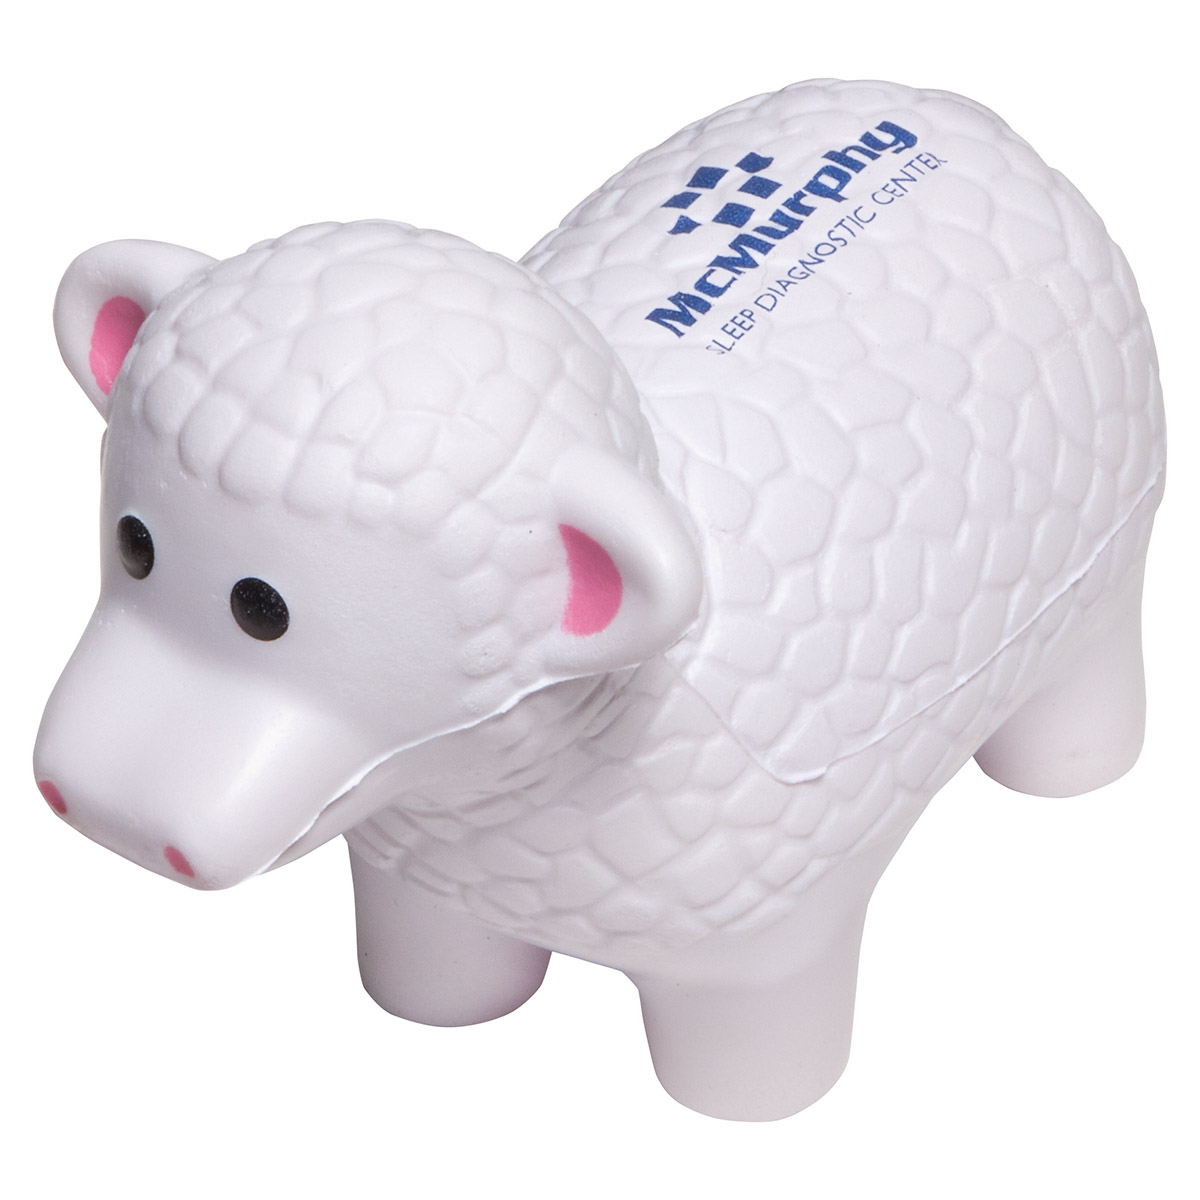 Sheep Stress Reliever, LAF-SH14 - 1 Colour Imprint